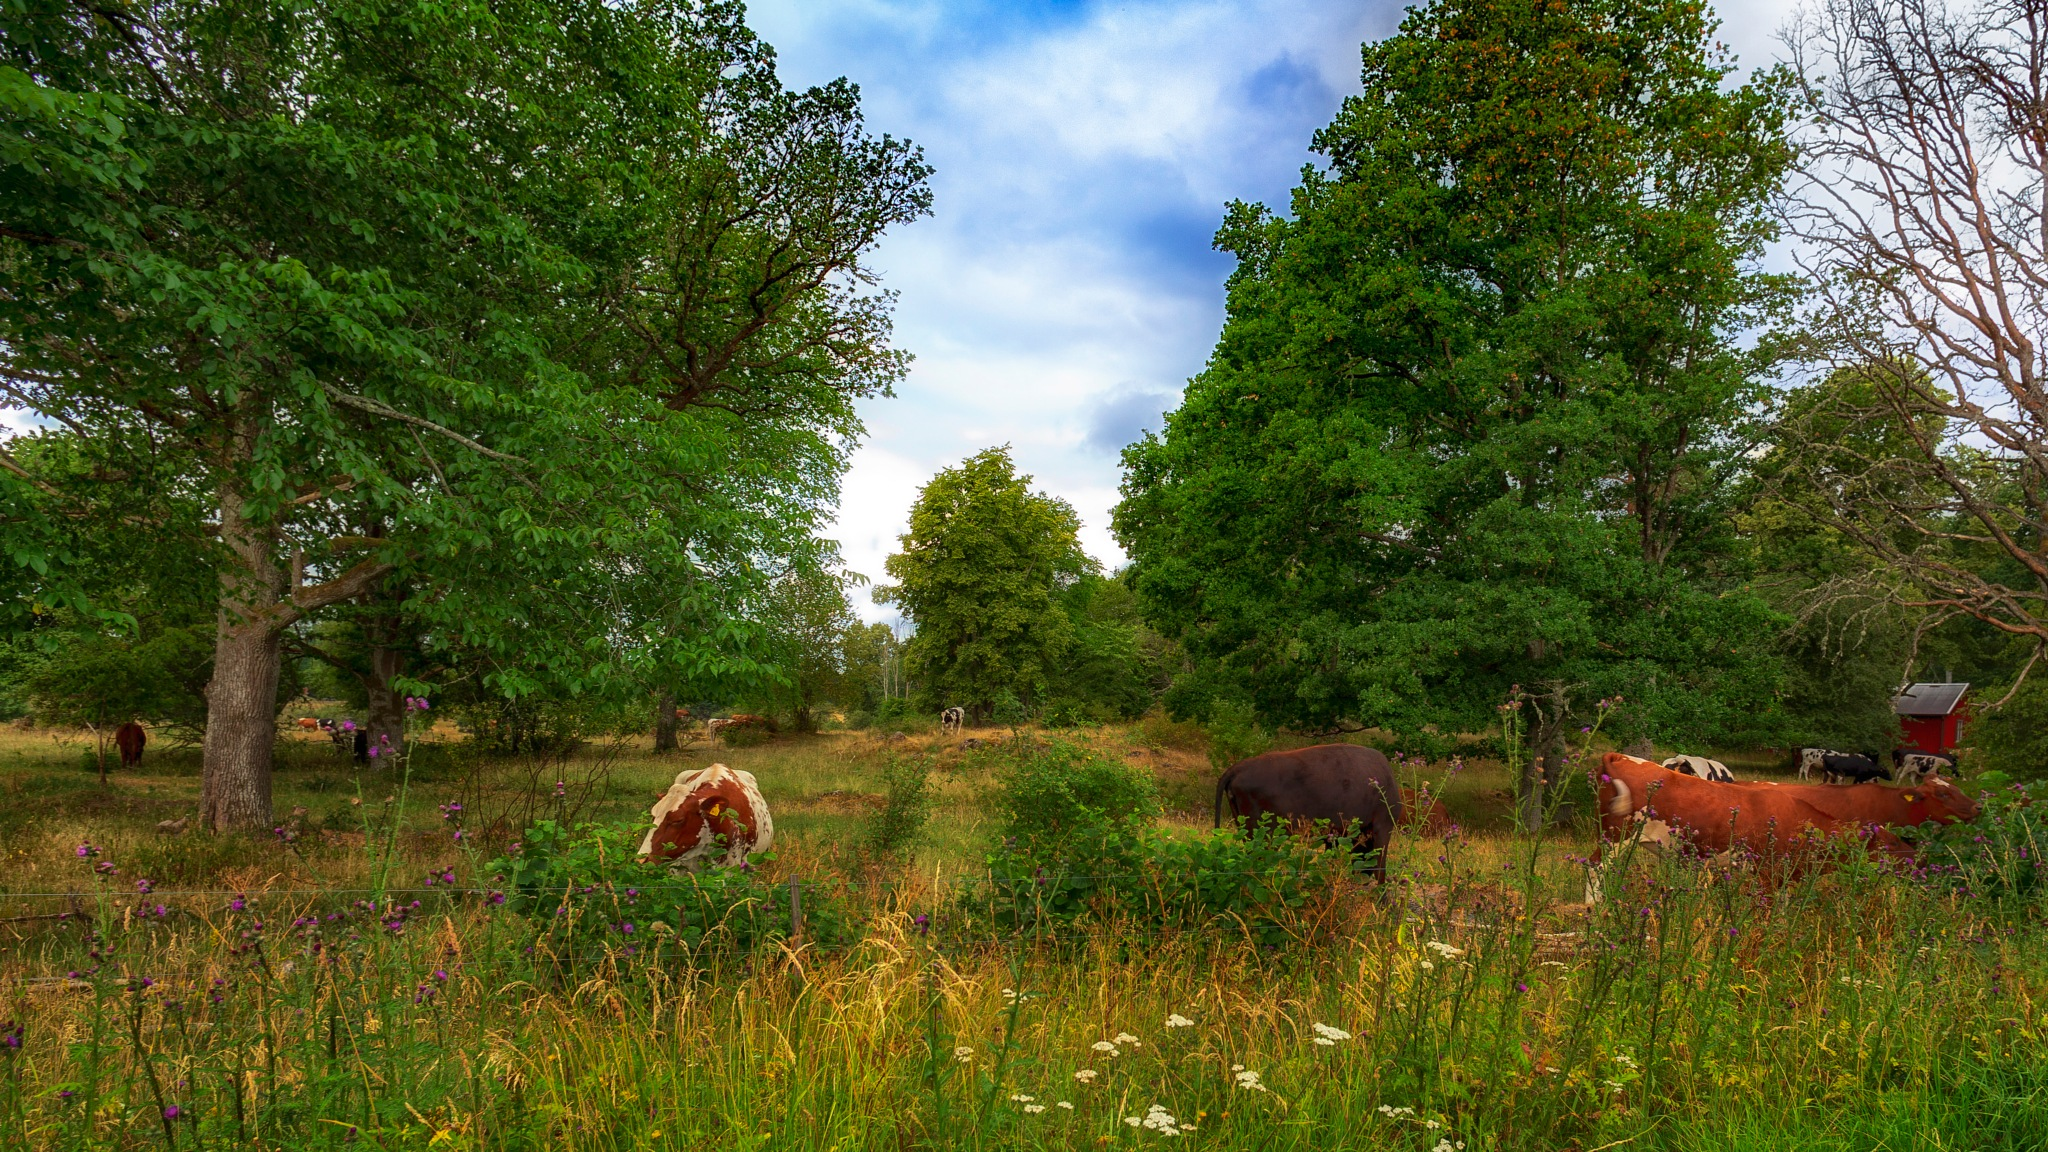 A Hot and Dry Summers Pasture II by carljan w carlsson